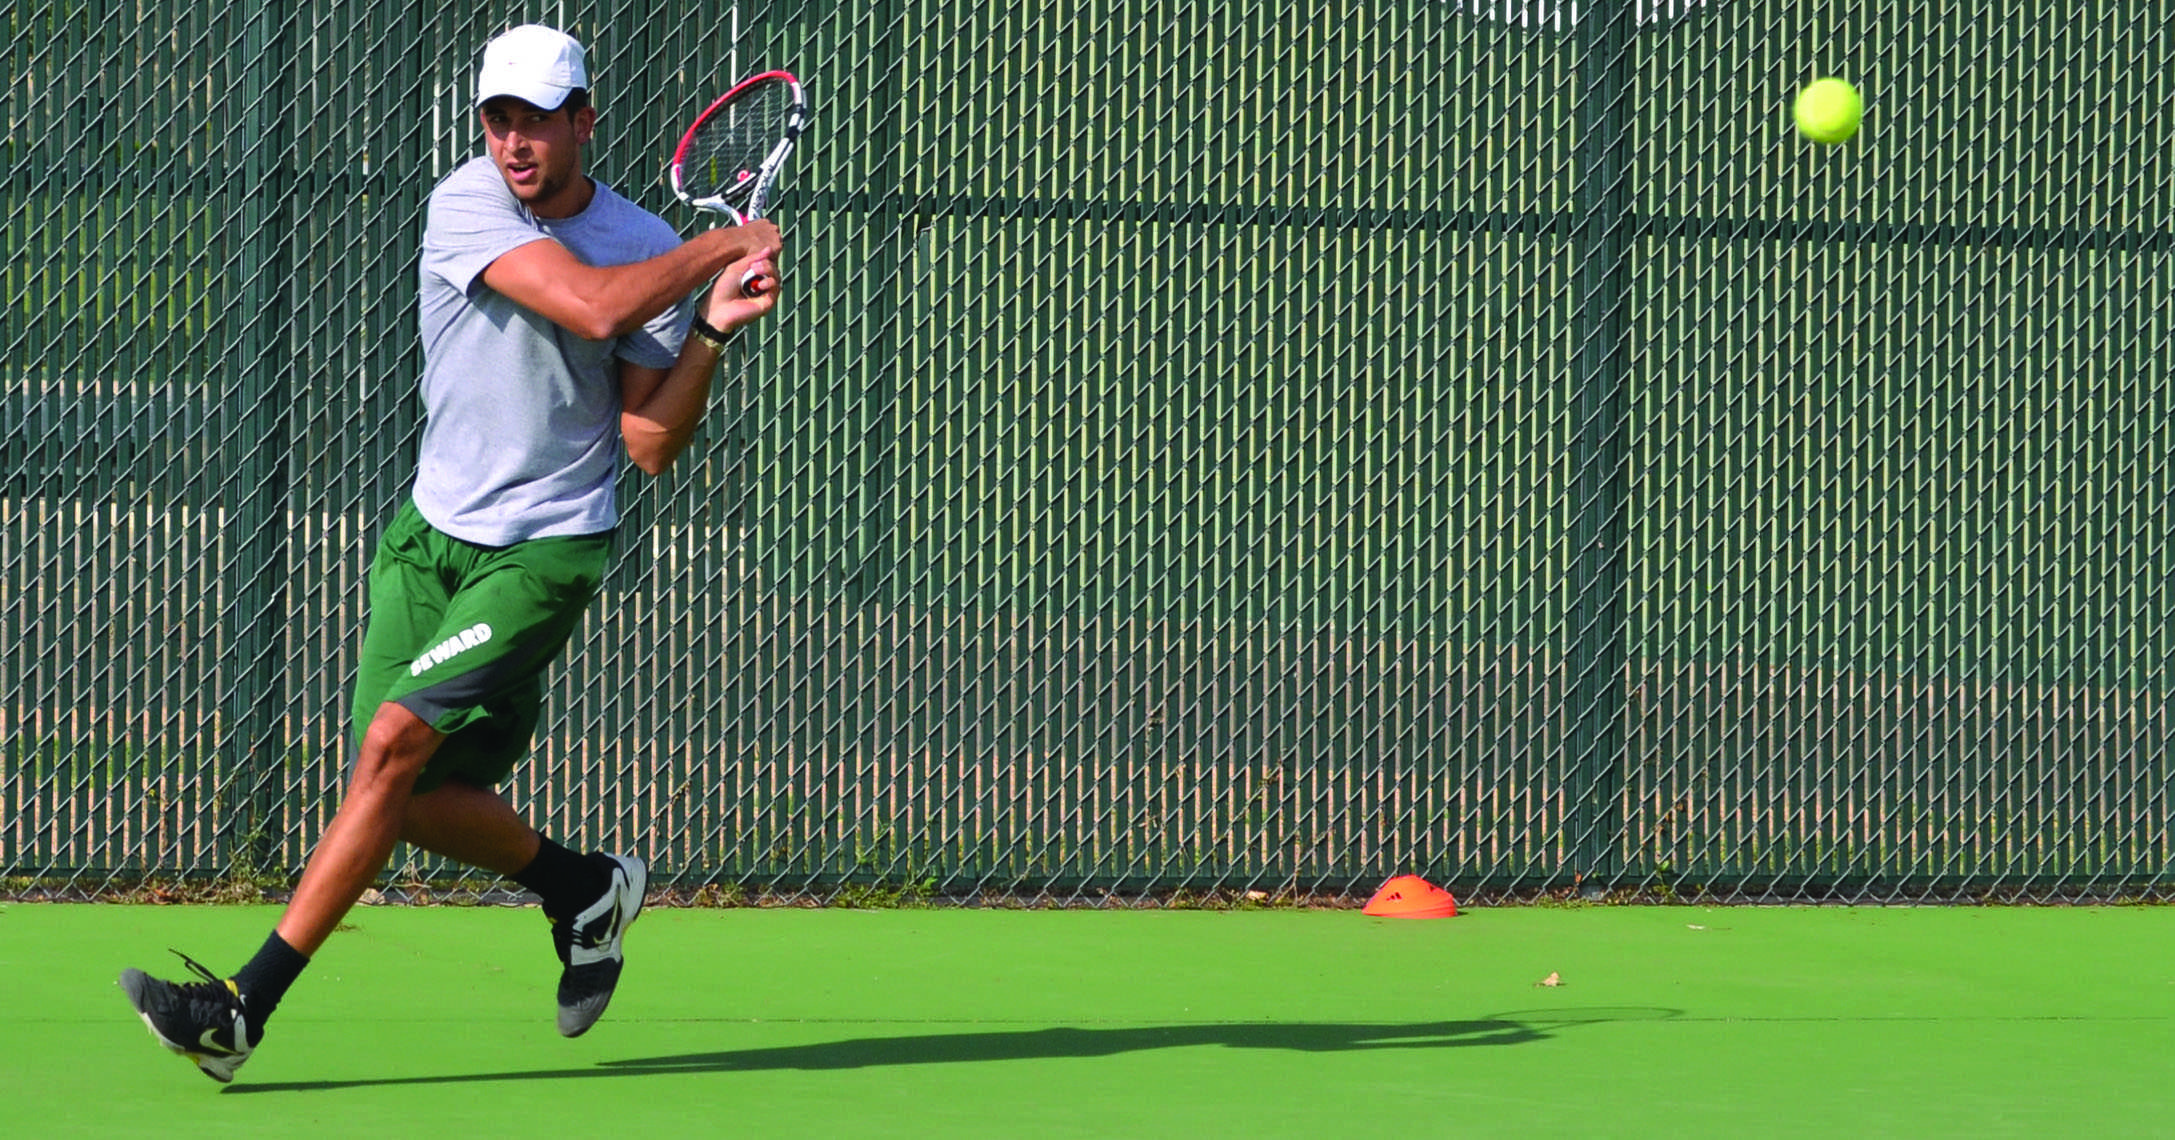 Saints and Lady Saints tennis teams face tough matches against four-year colleges